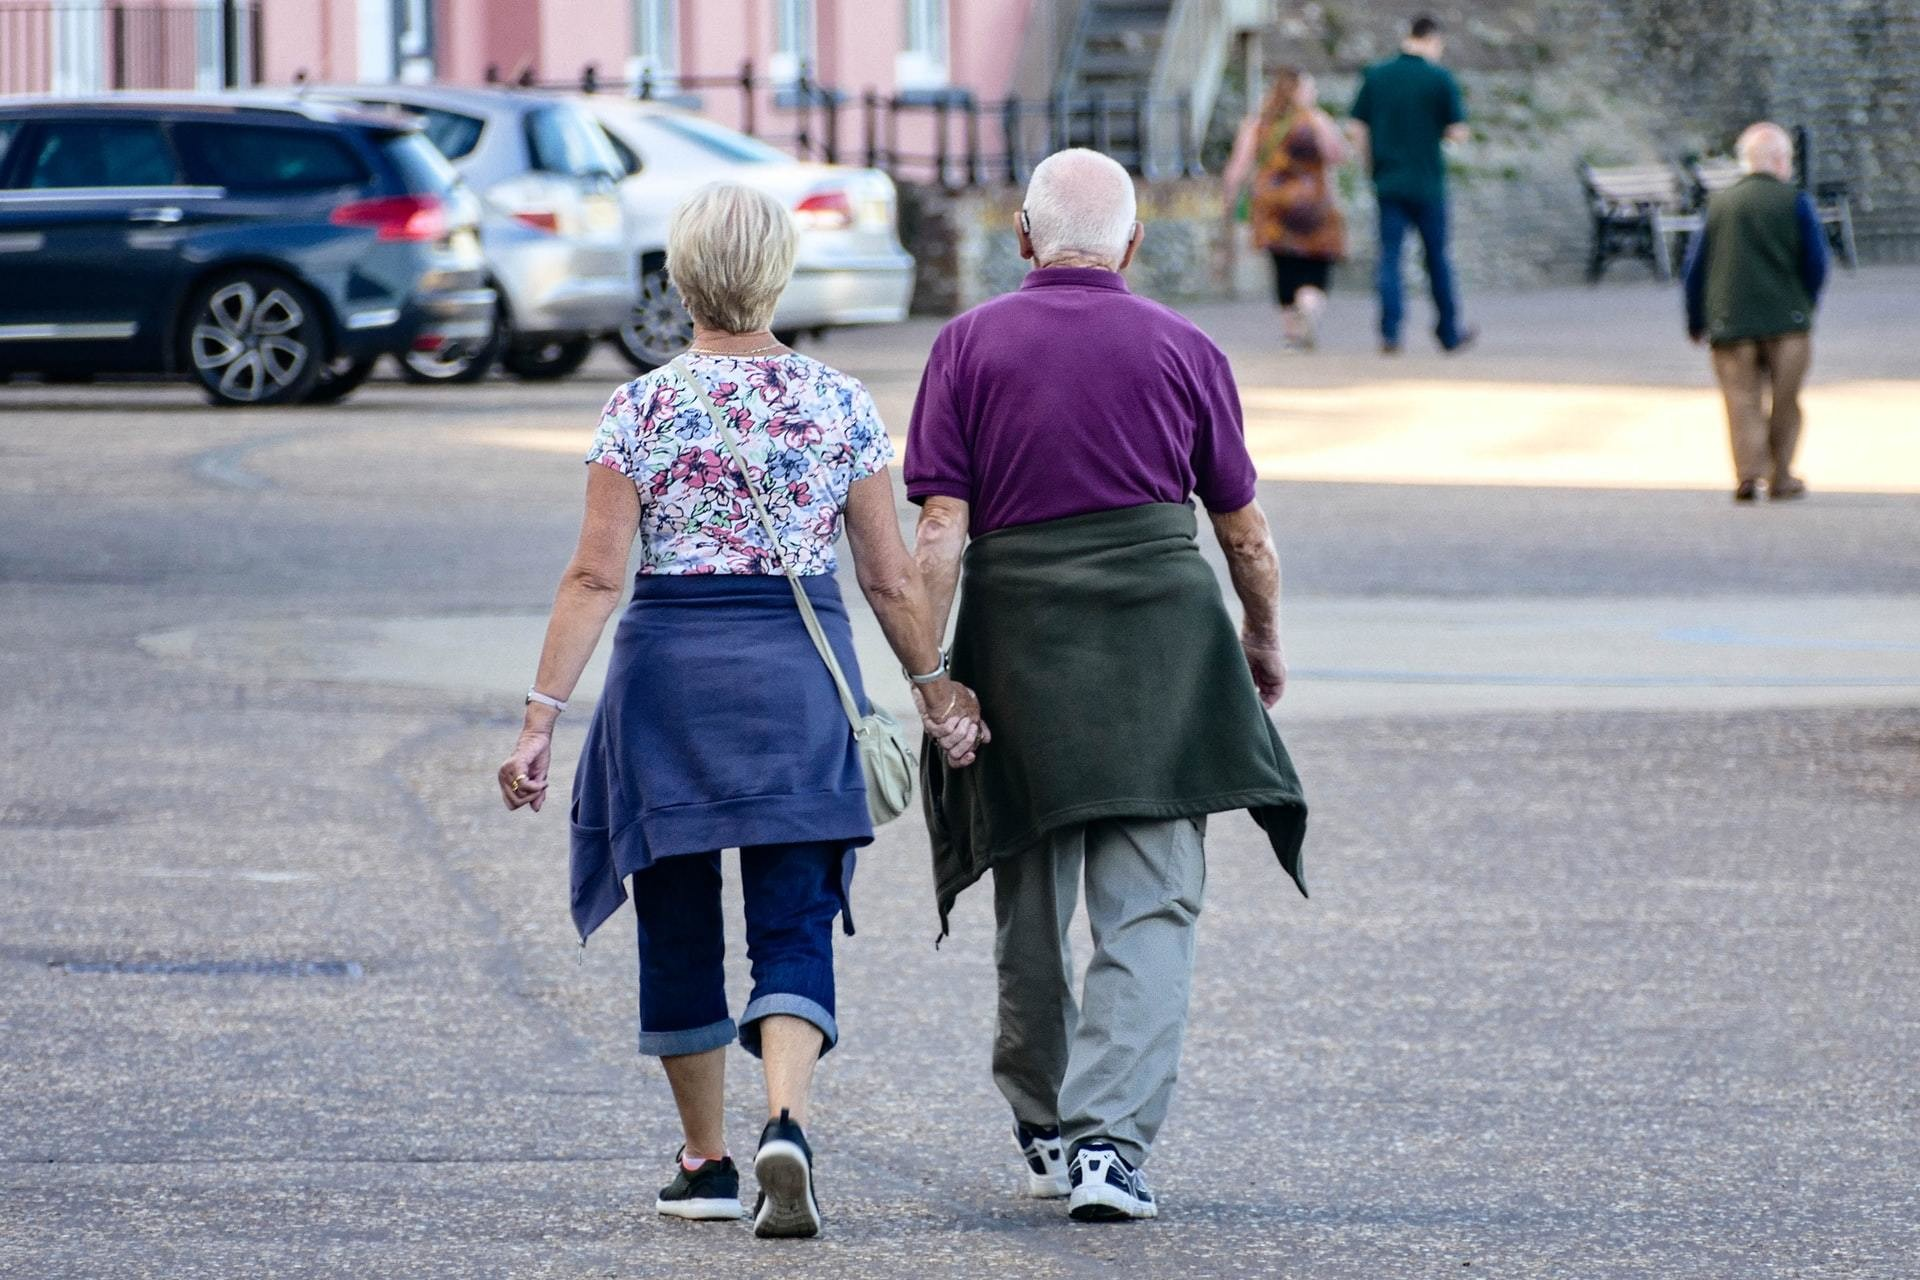 An ageing couple walking hand-in-hand down a street